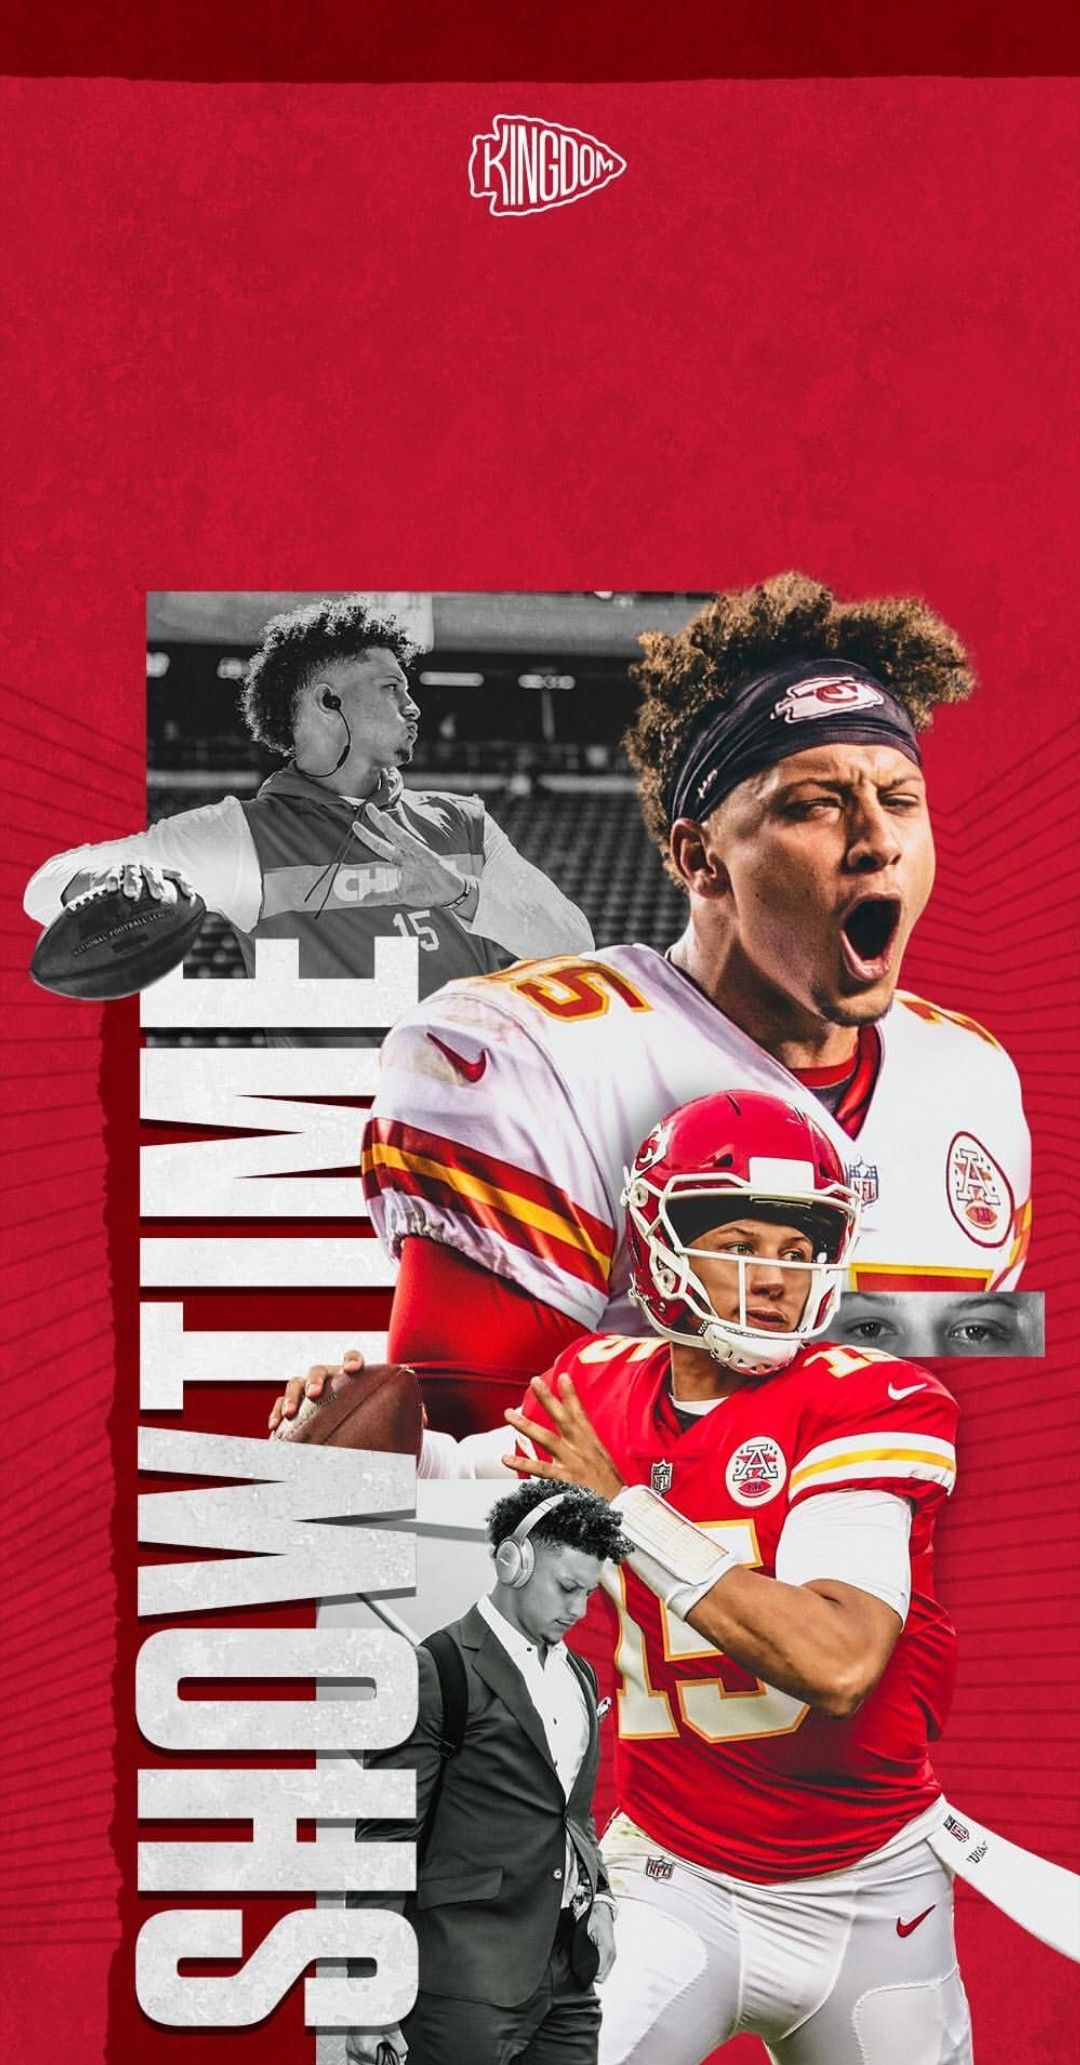 Patrick Mahomes Wallpaper Kc Chiefs Football Kansas City Chiefs Football Chiefs Football